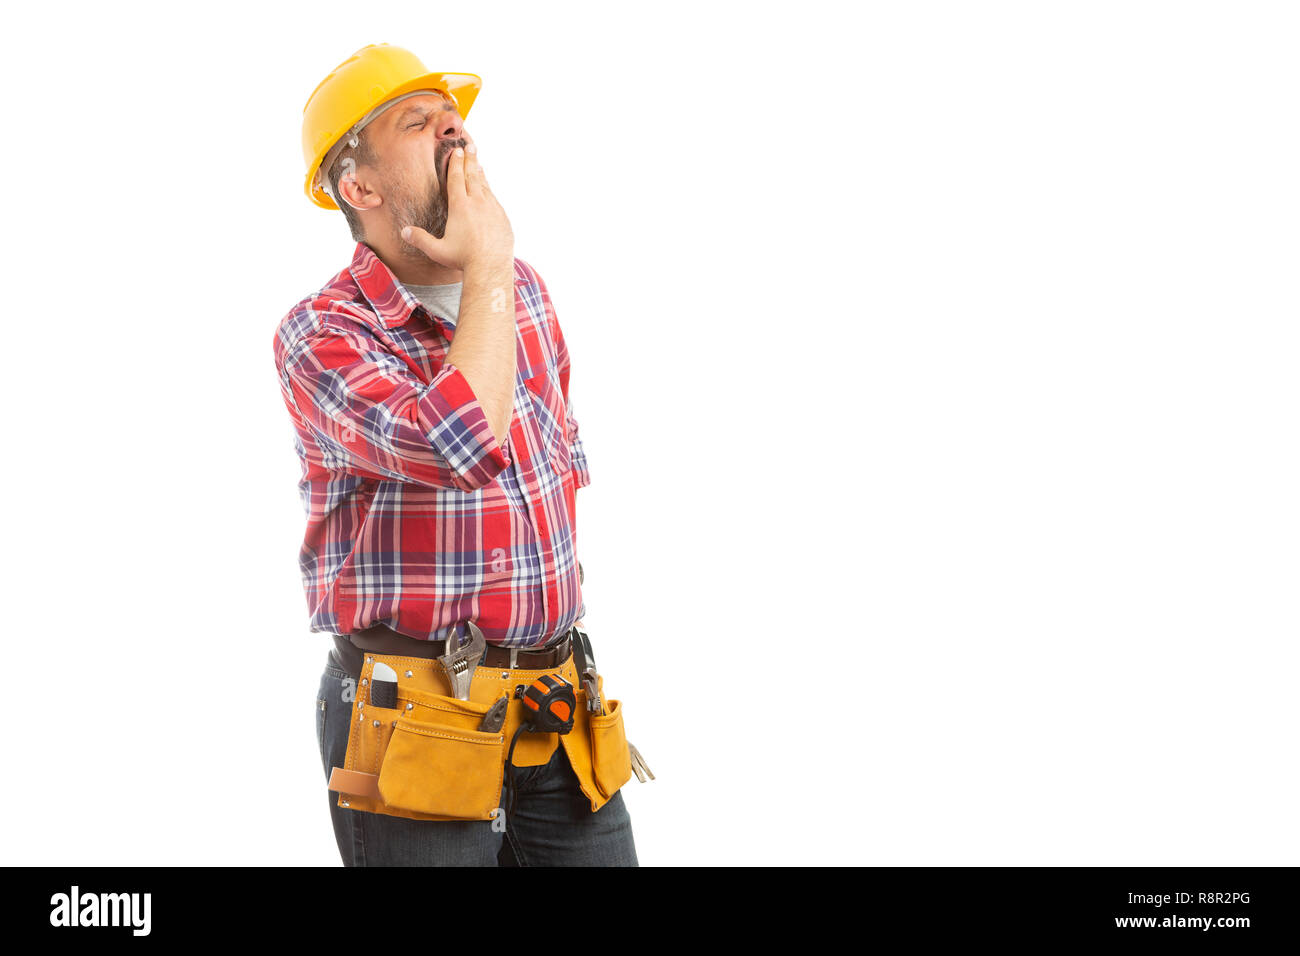 Sleepy builder covering mouth while yawning as tiresome hard work isolated on white studio background - Stock Image